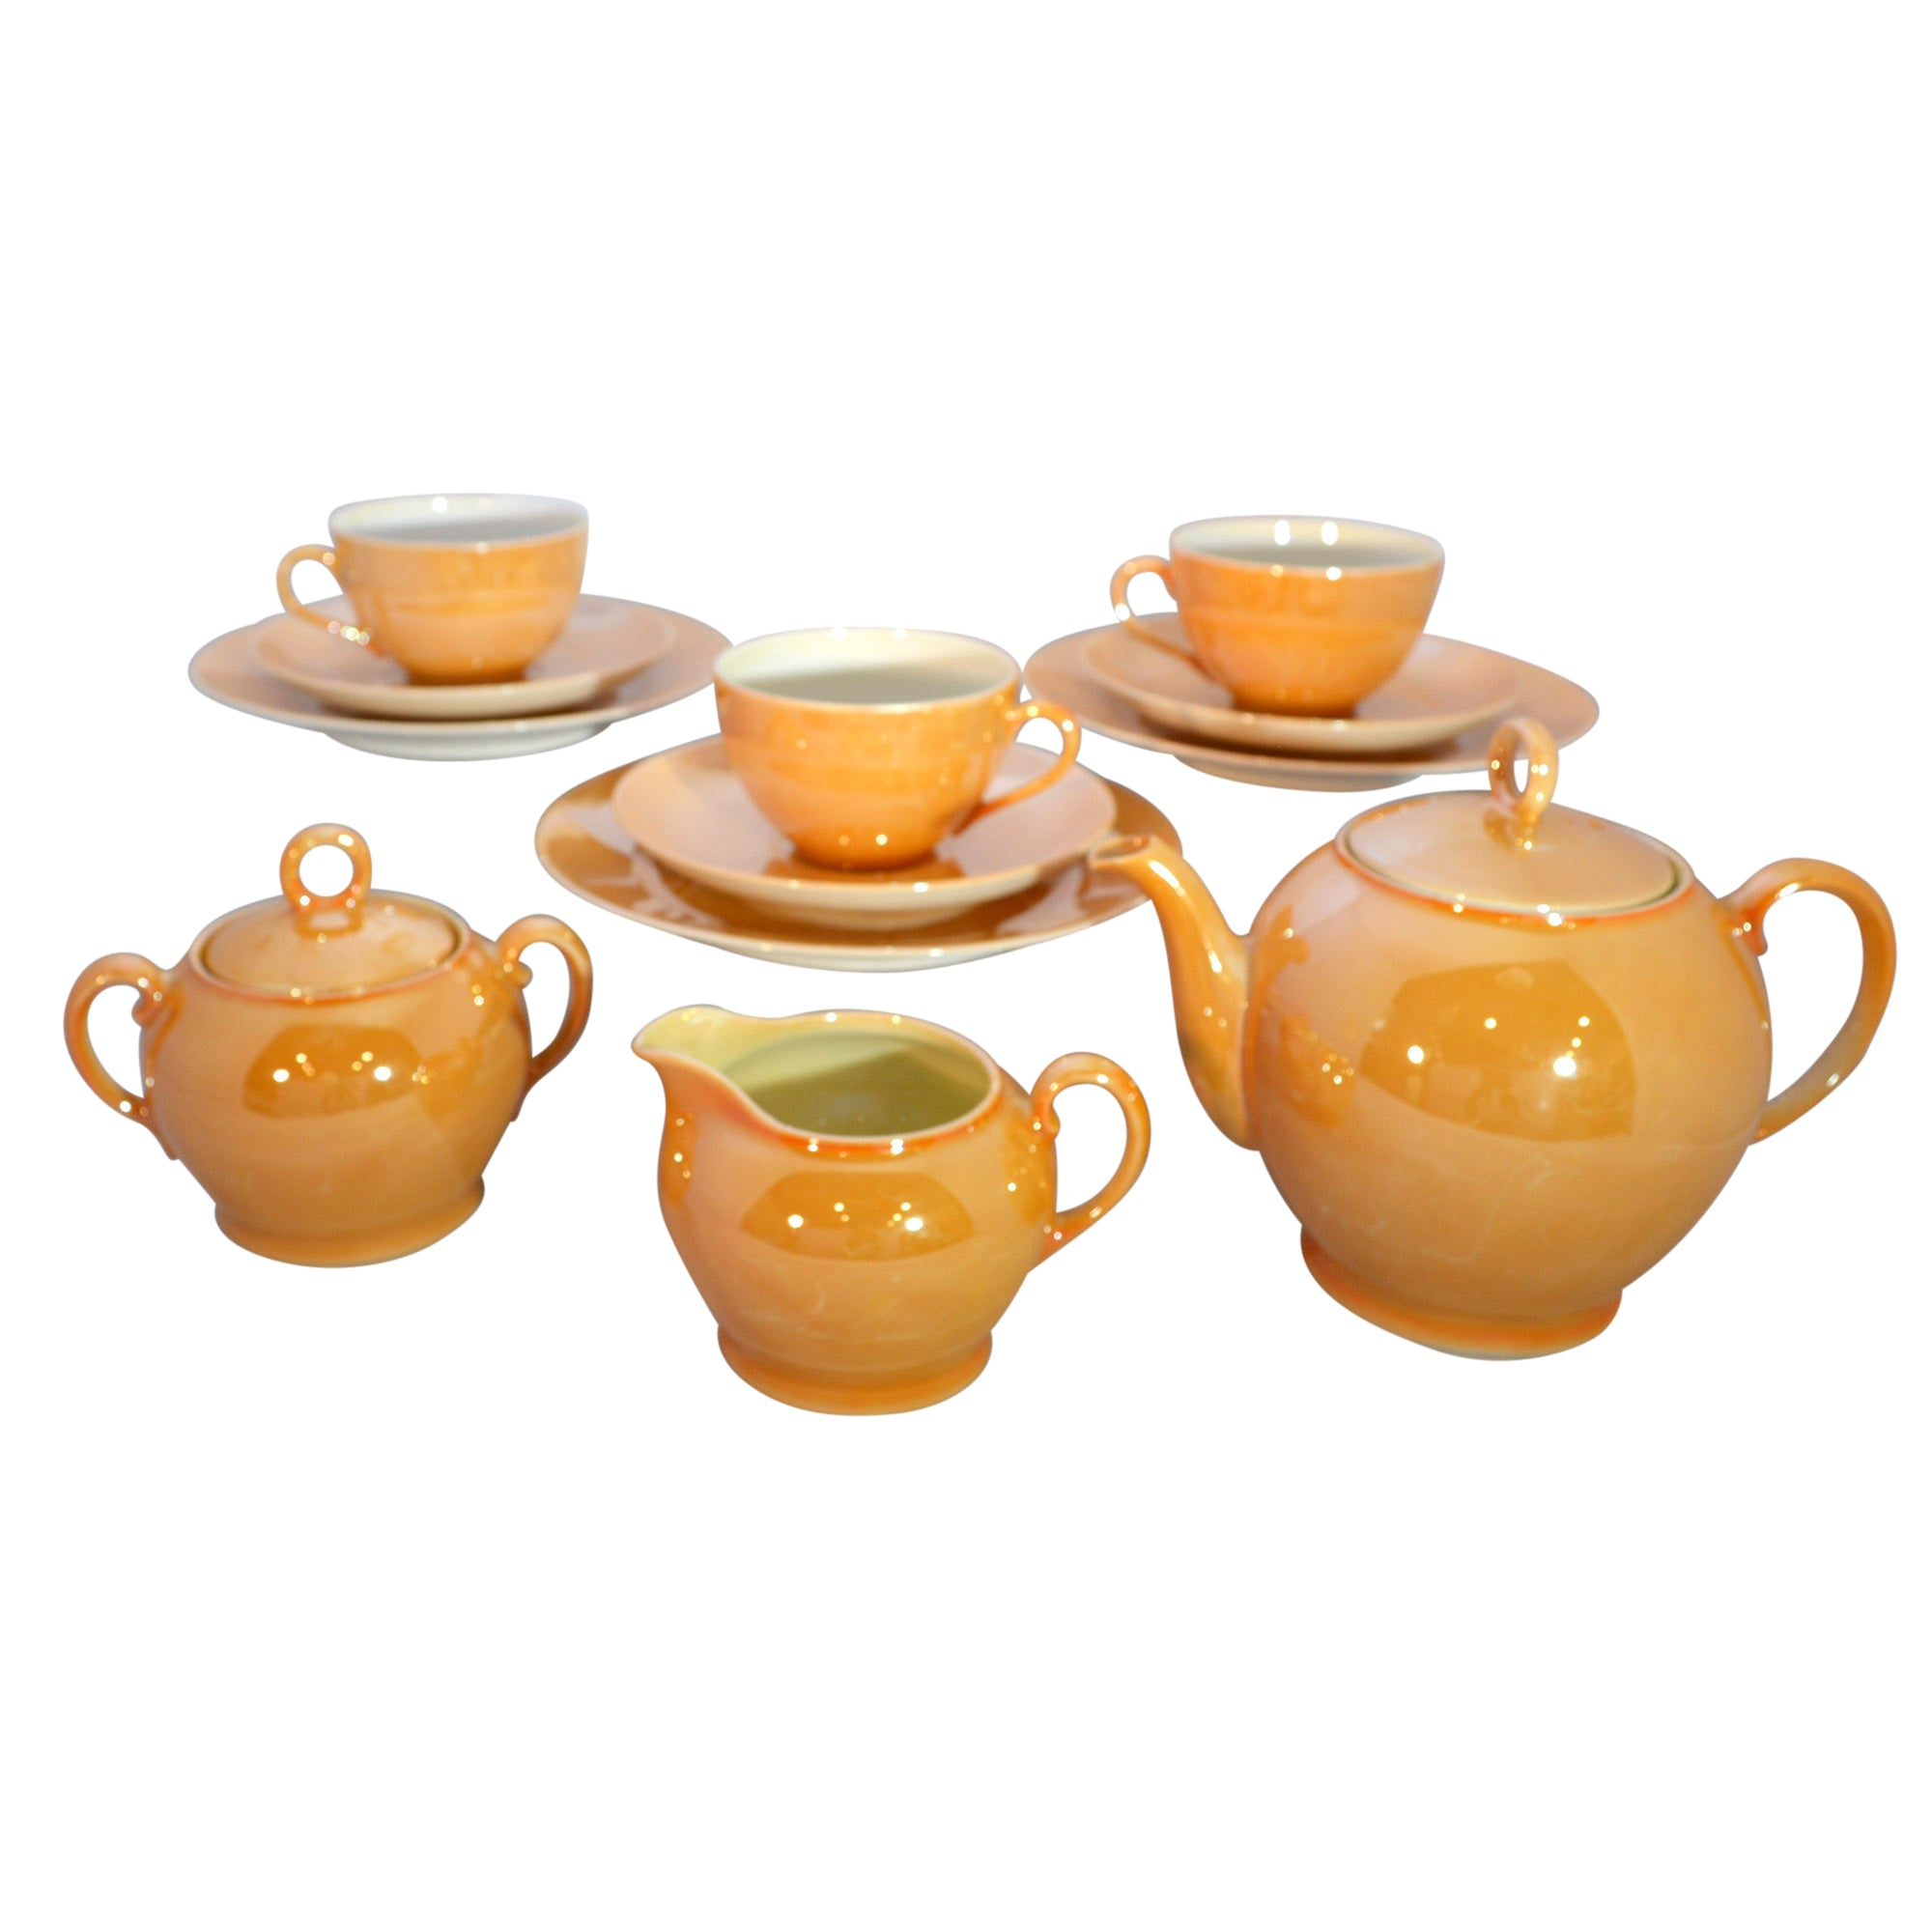 Gold Lusterware Tea Set Czech Slovakia